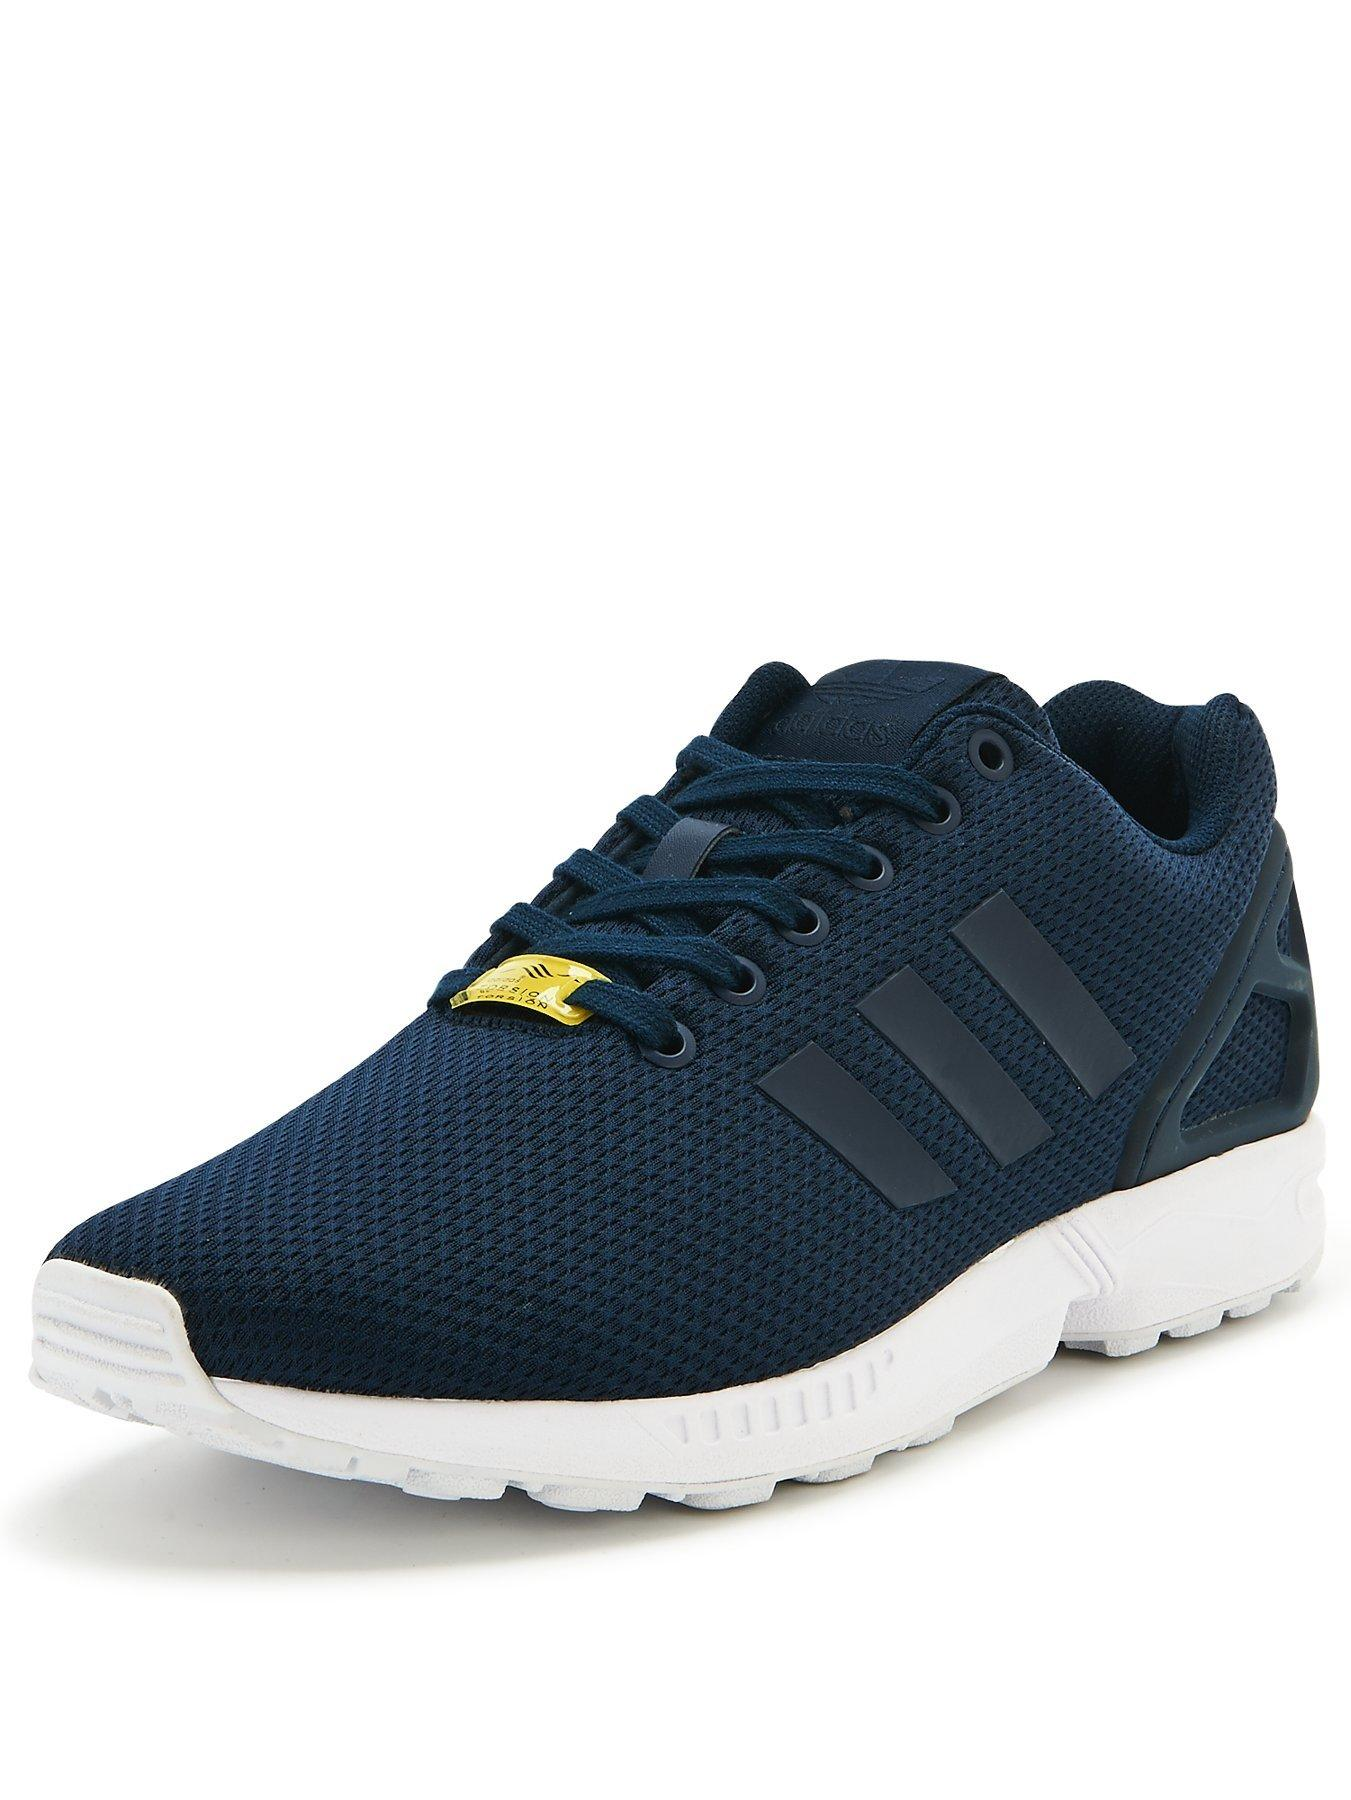 adidas Originals ZX Flux Mens Trainers |